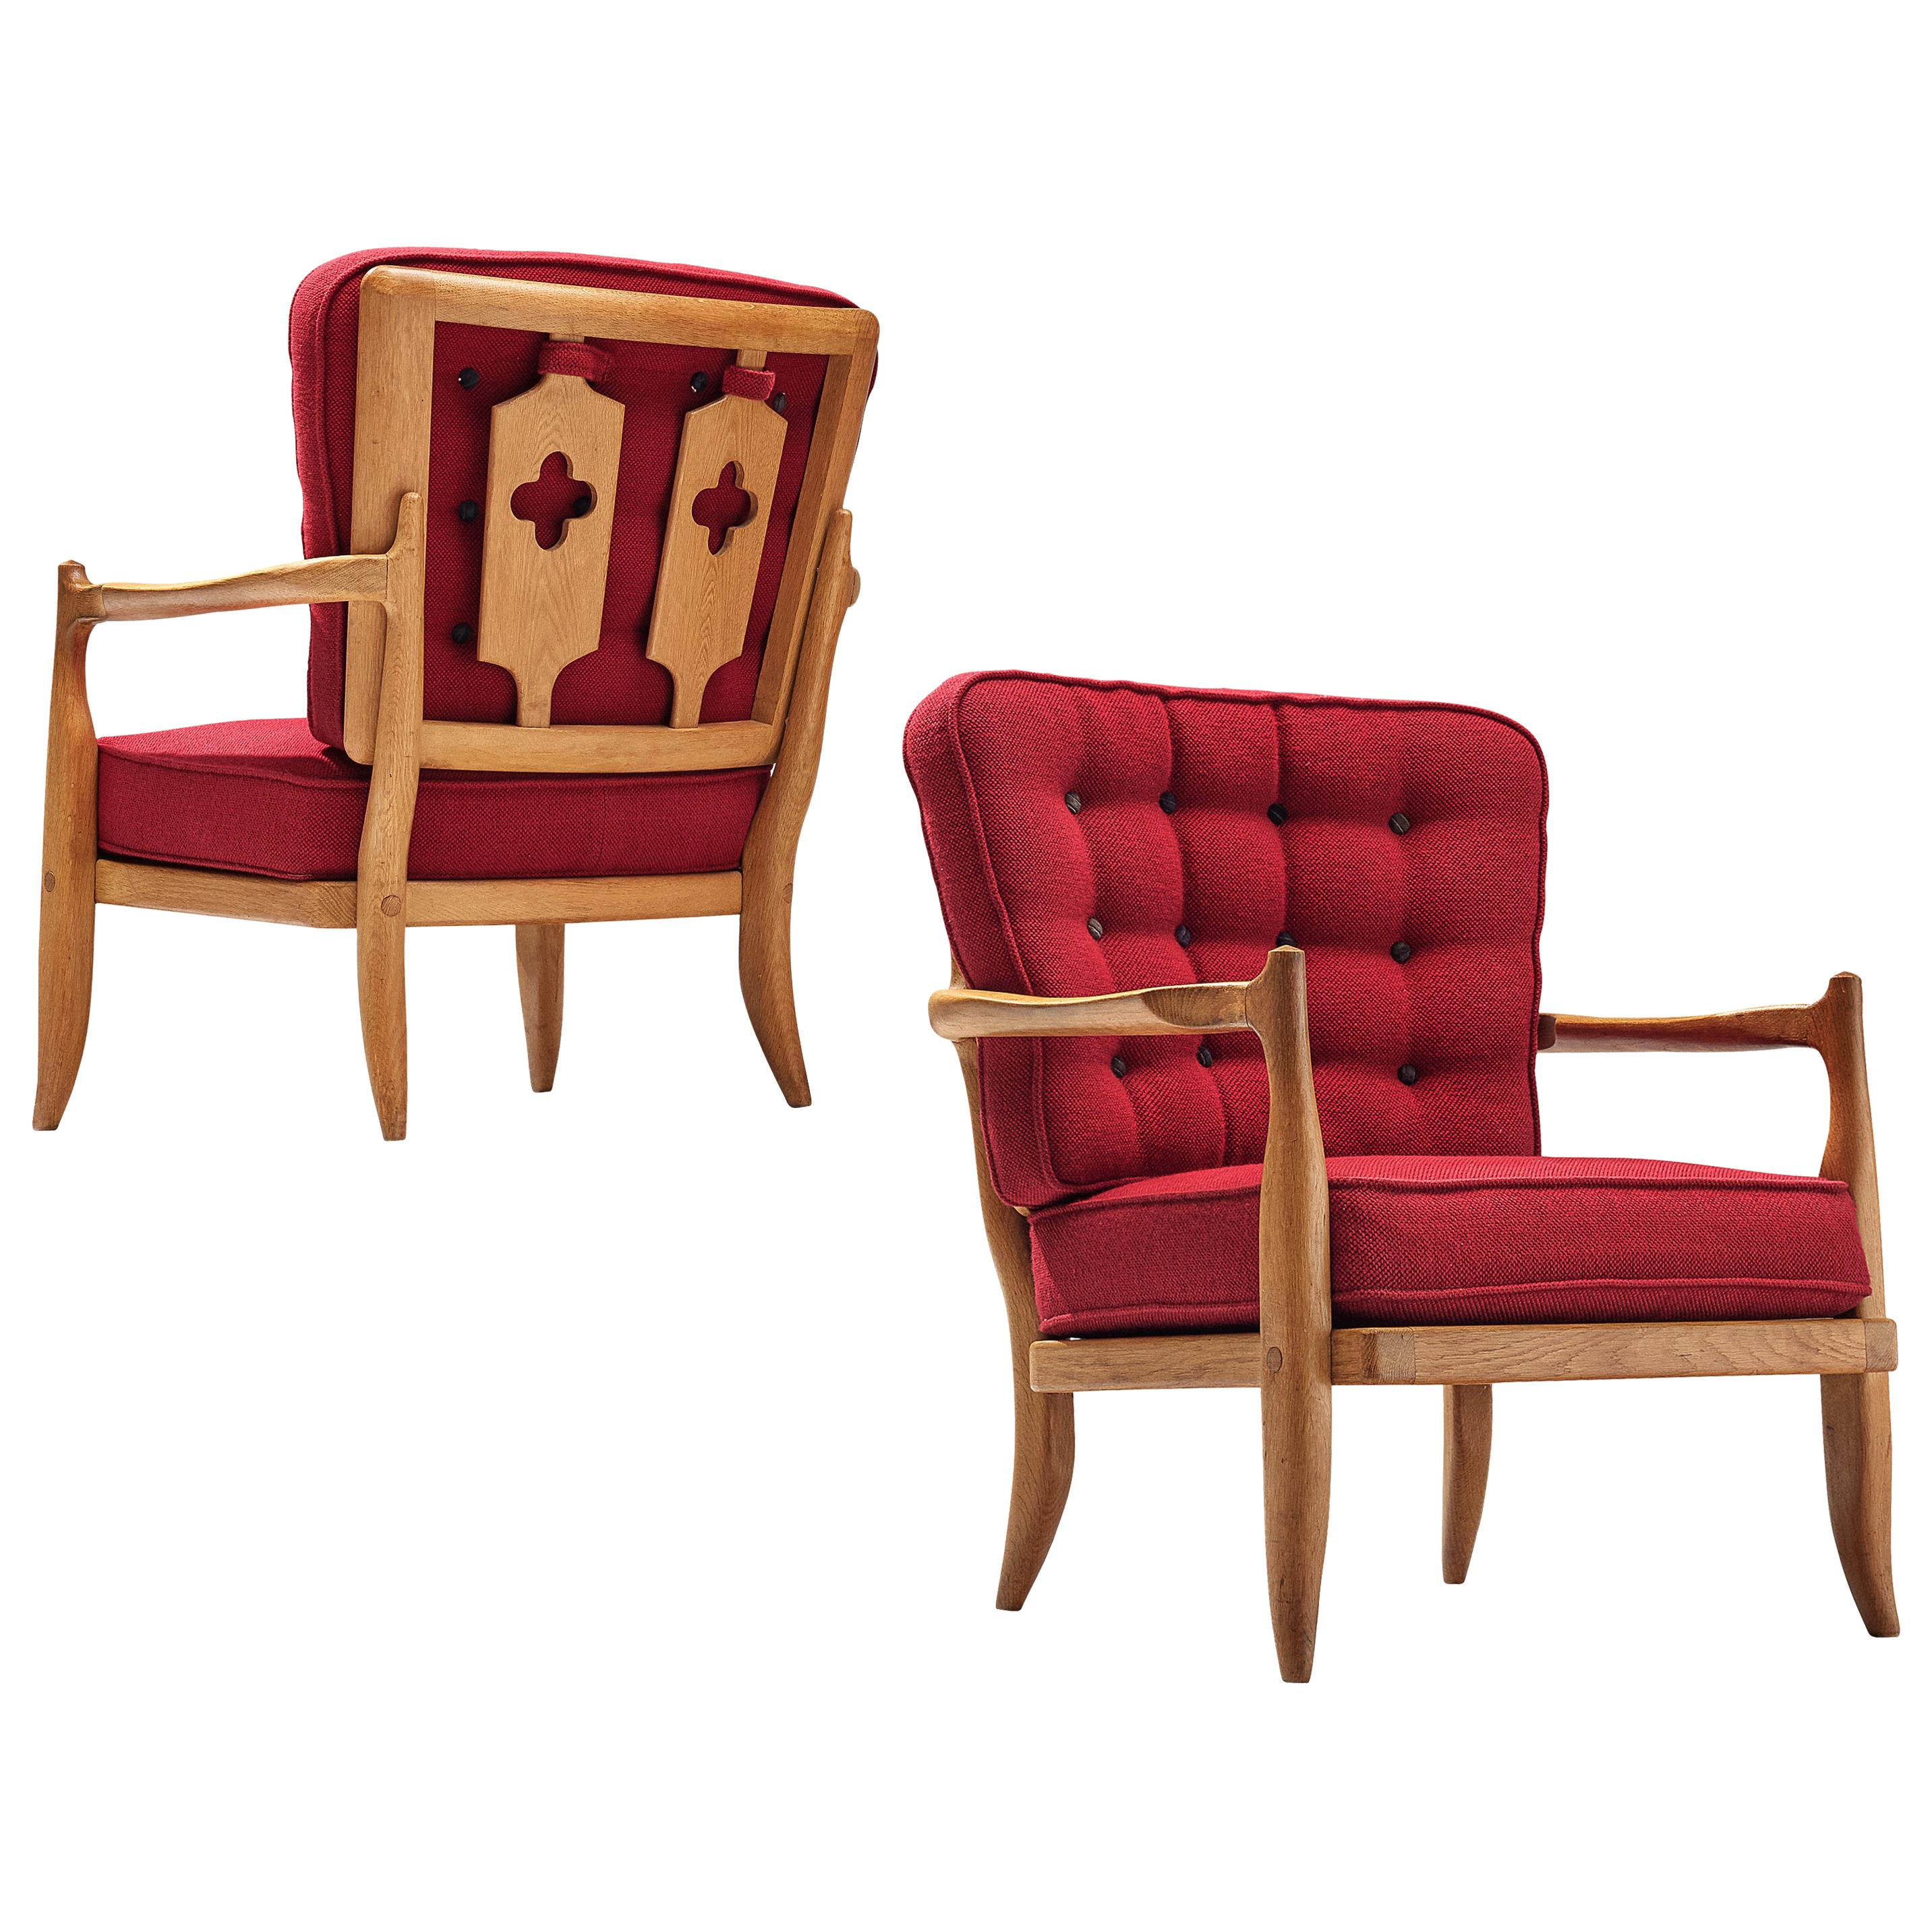 Pair of Guillerme et Chambron Easy Chairs in Oak and Red Upholstery